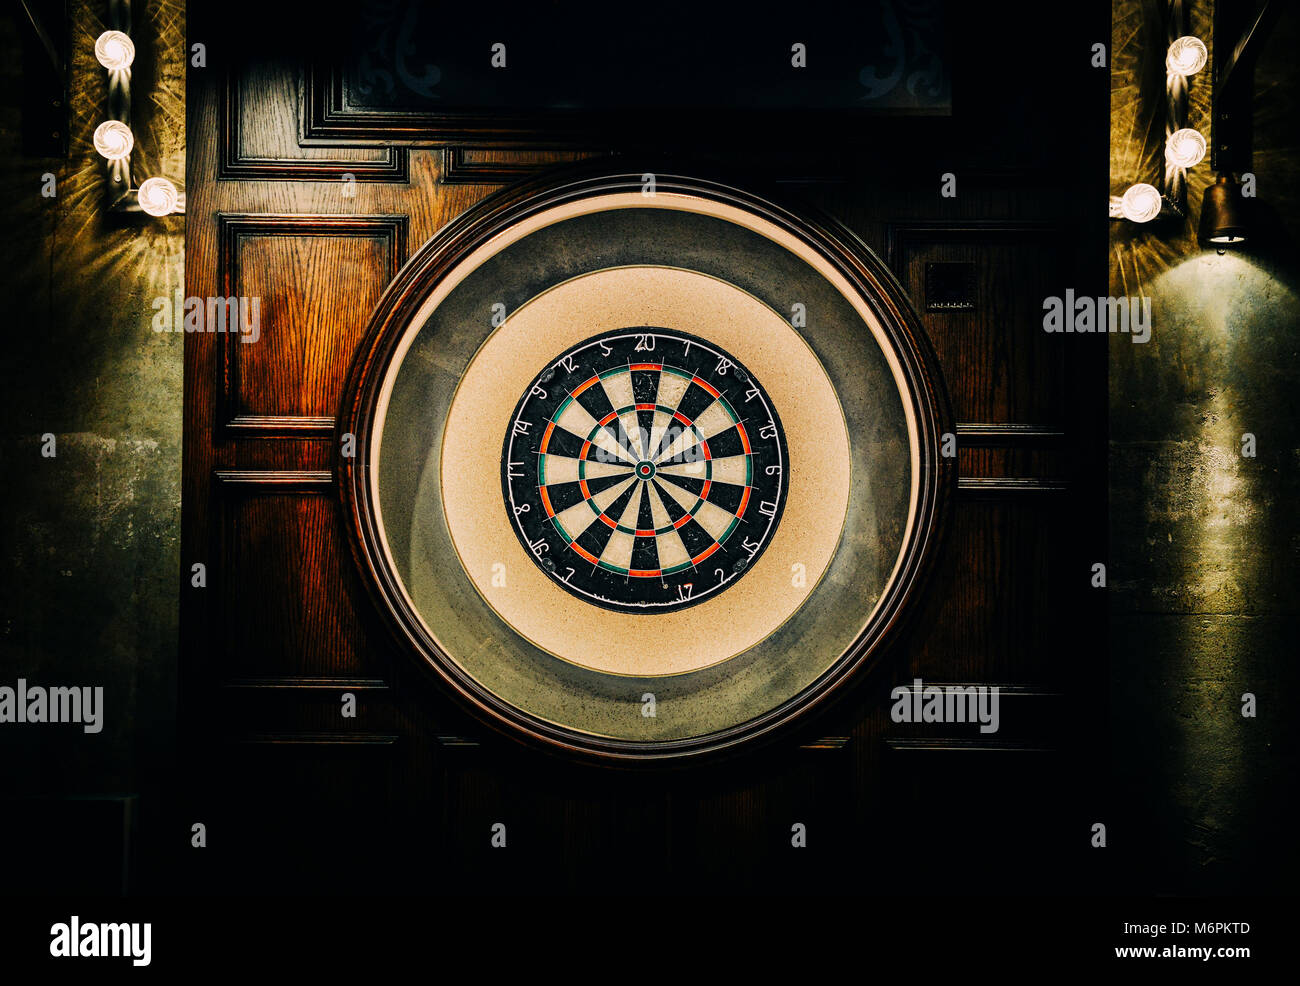 English style dart board with wooden backdrop and faded lights Stock Photo